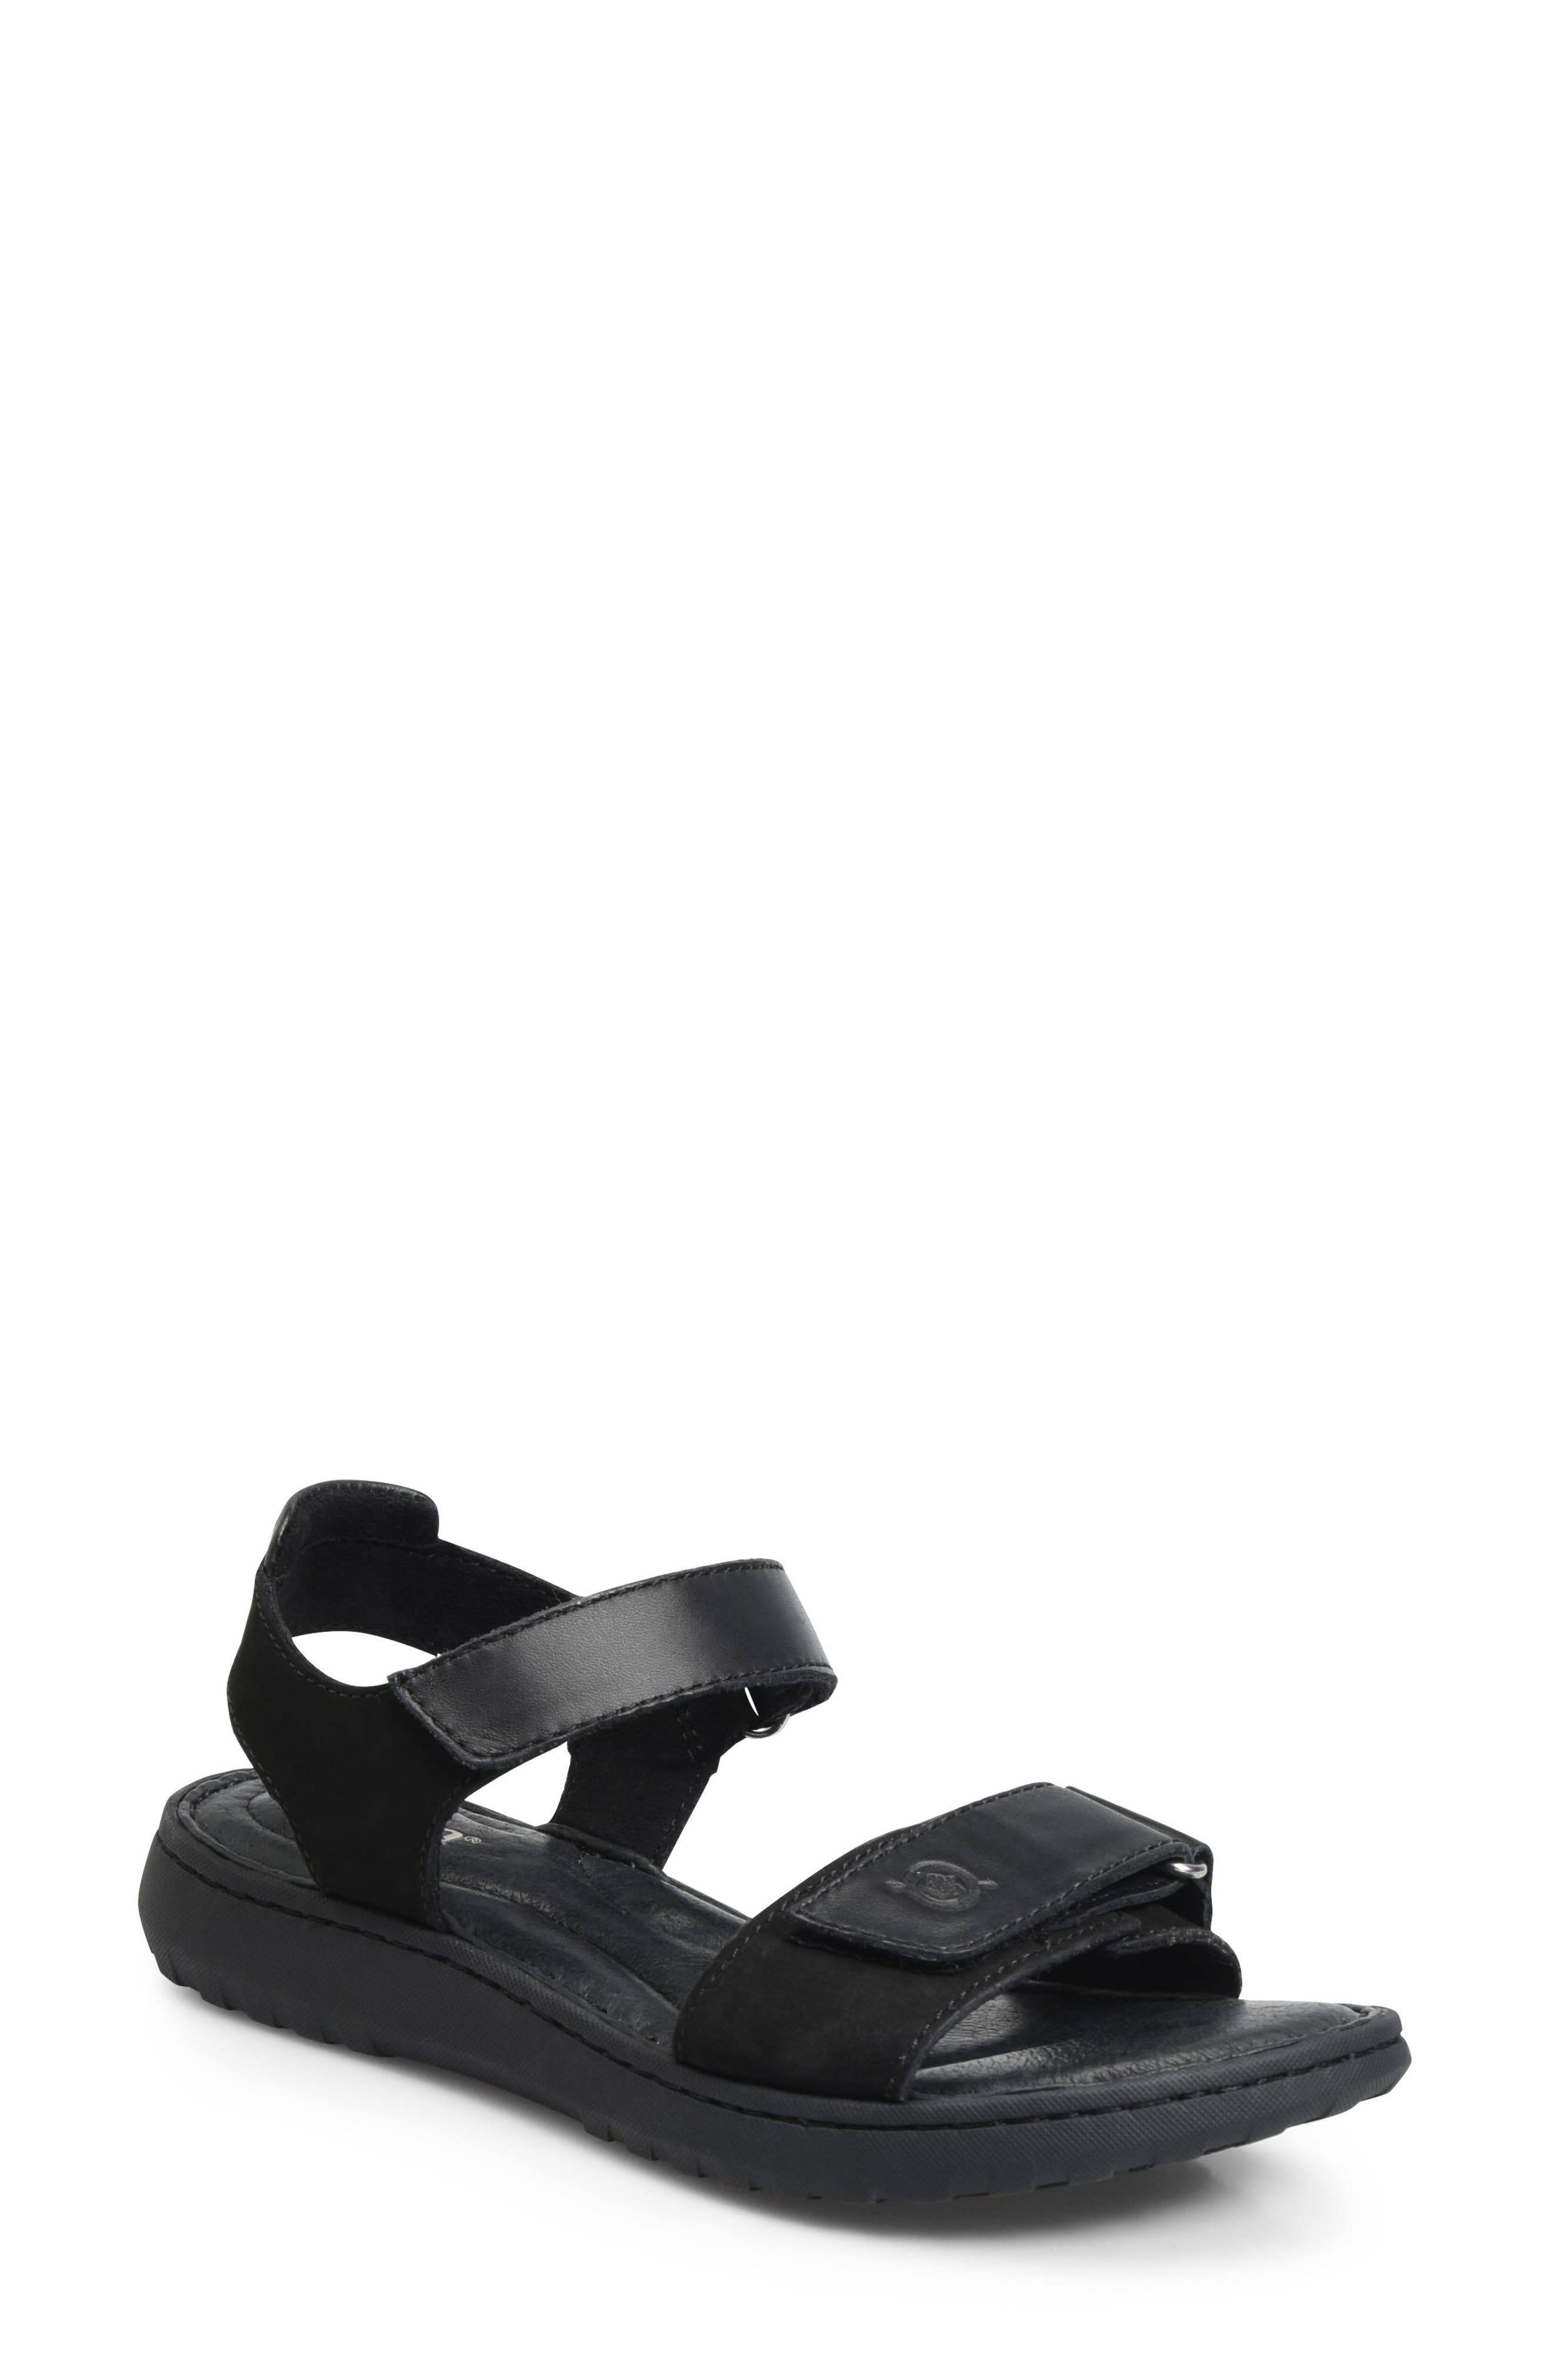 Nirvana Sandal,                         Main,                         color, Black Leather